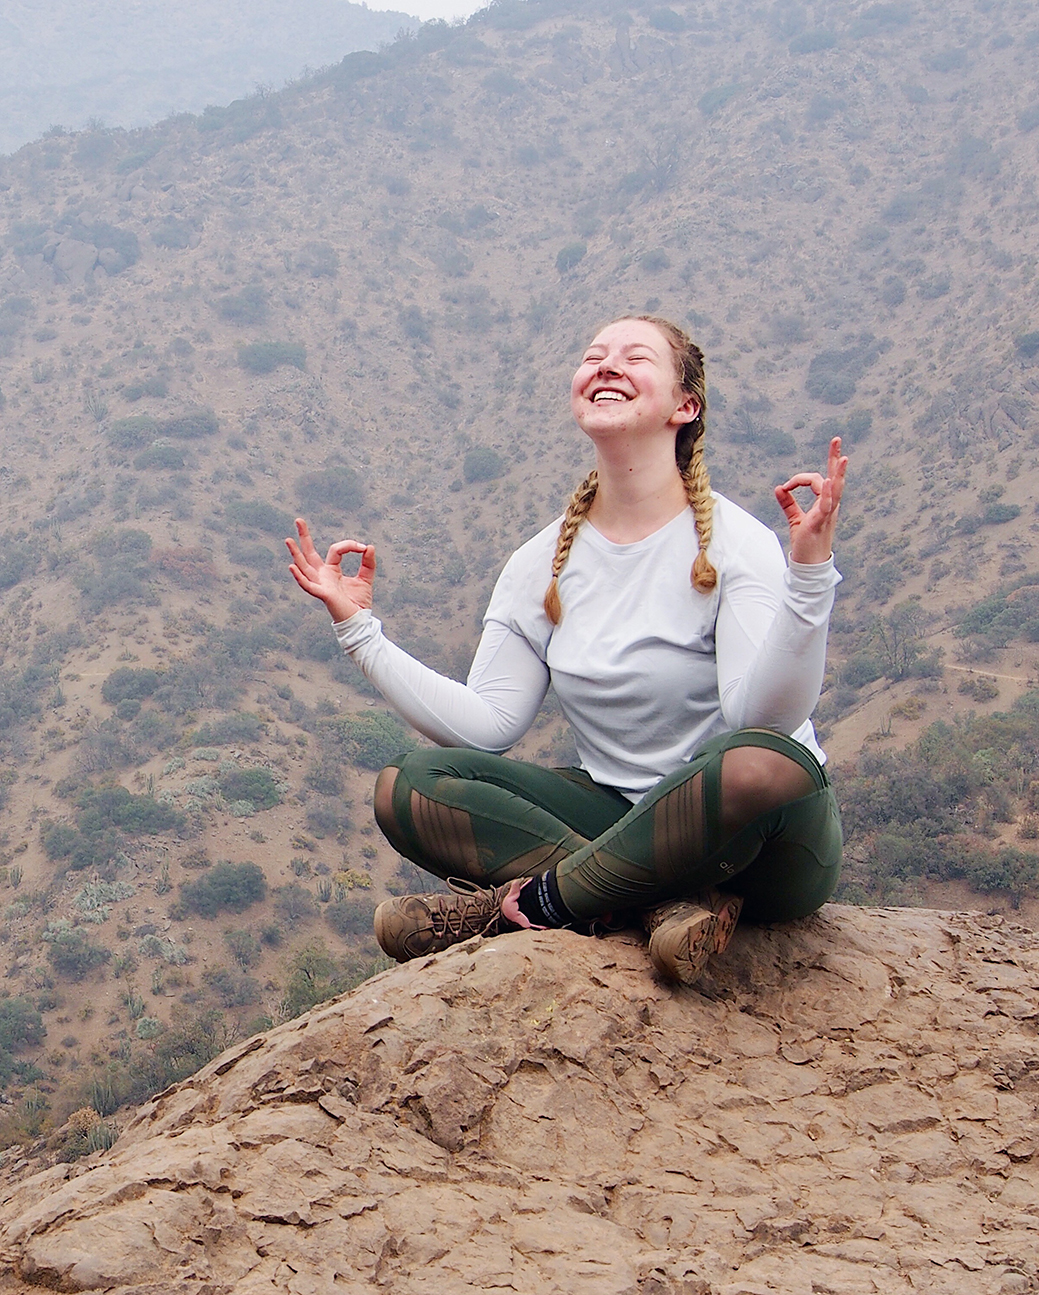 Alexa sitting in a meditative post on top of mountain in the Andes.